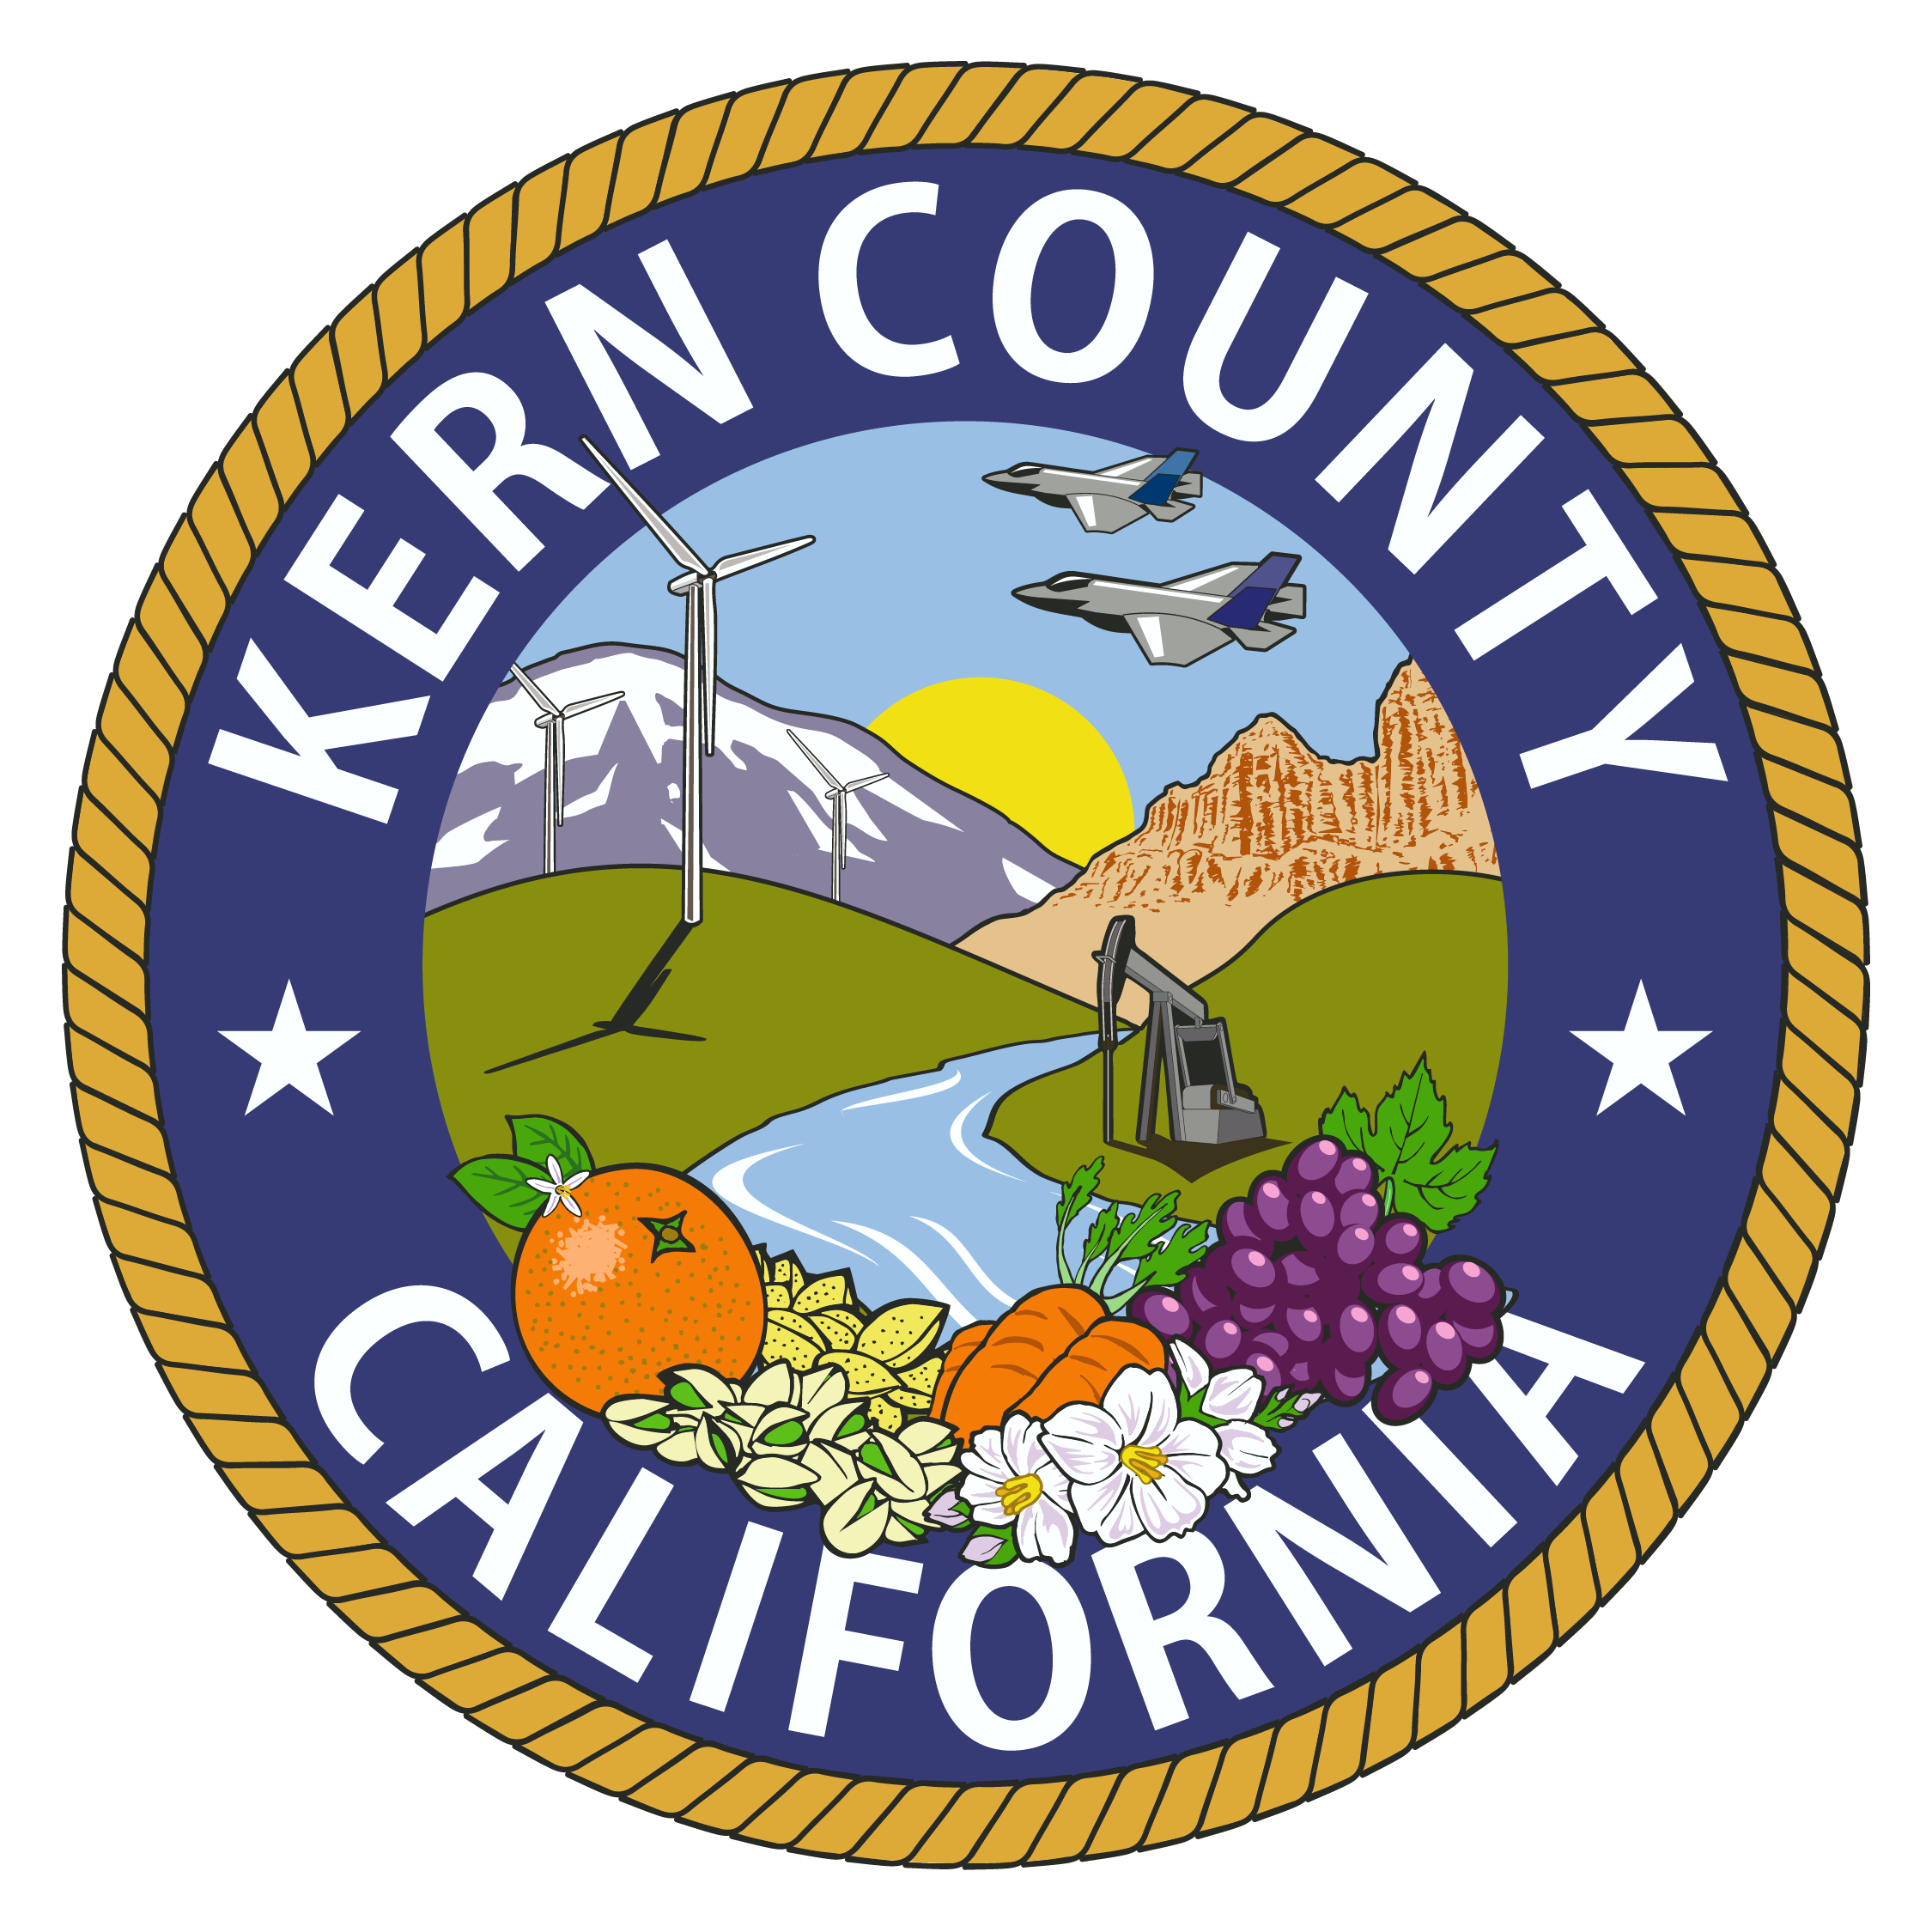 Kern County California Seal